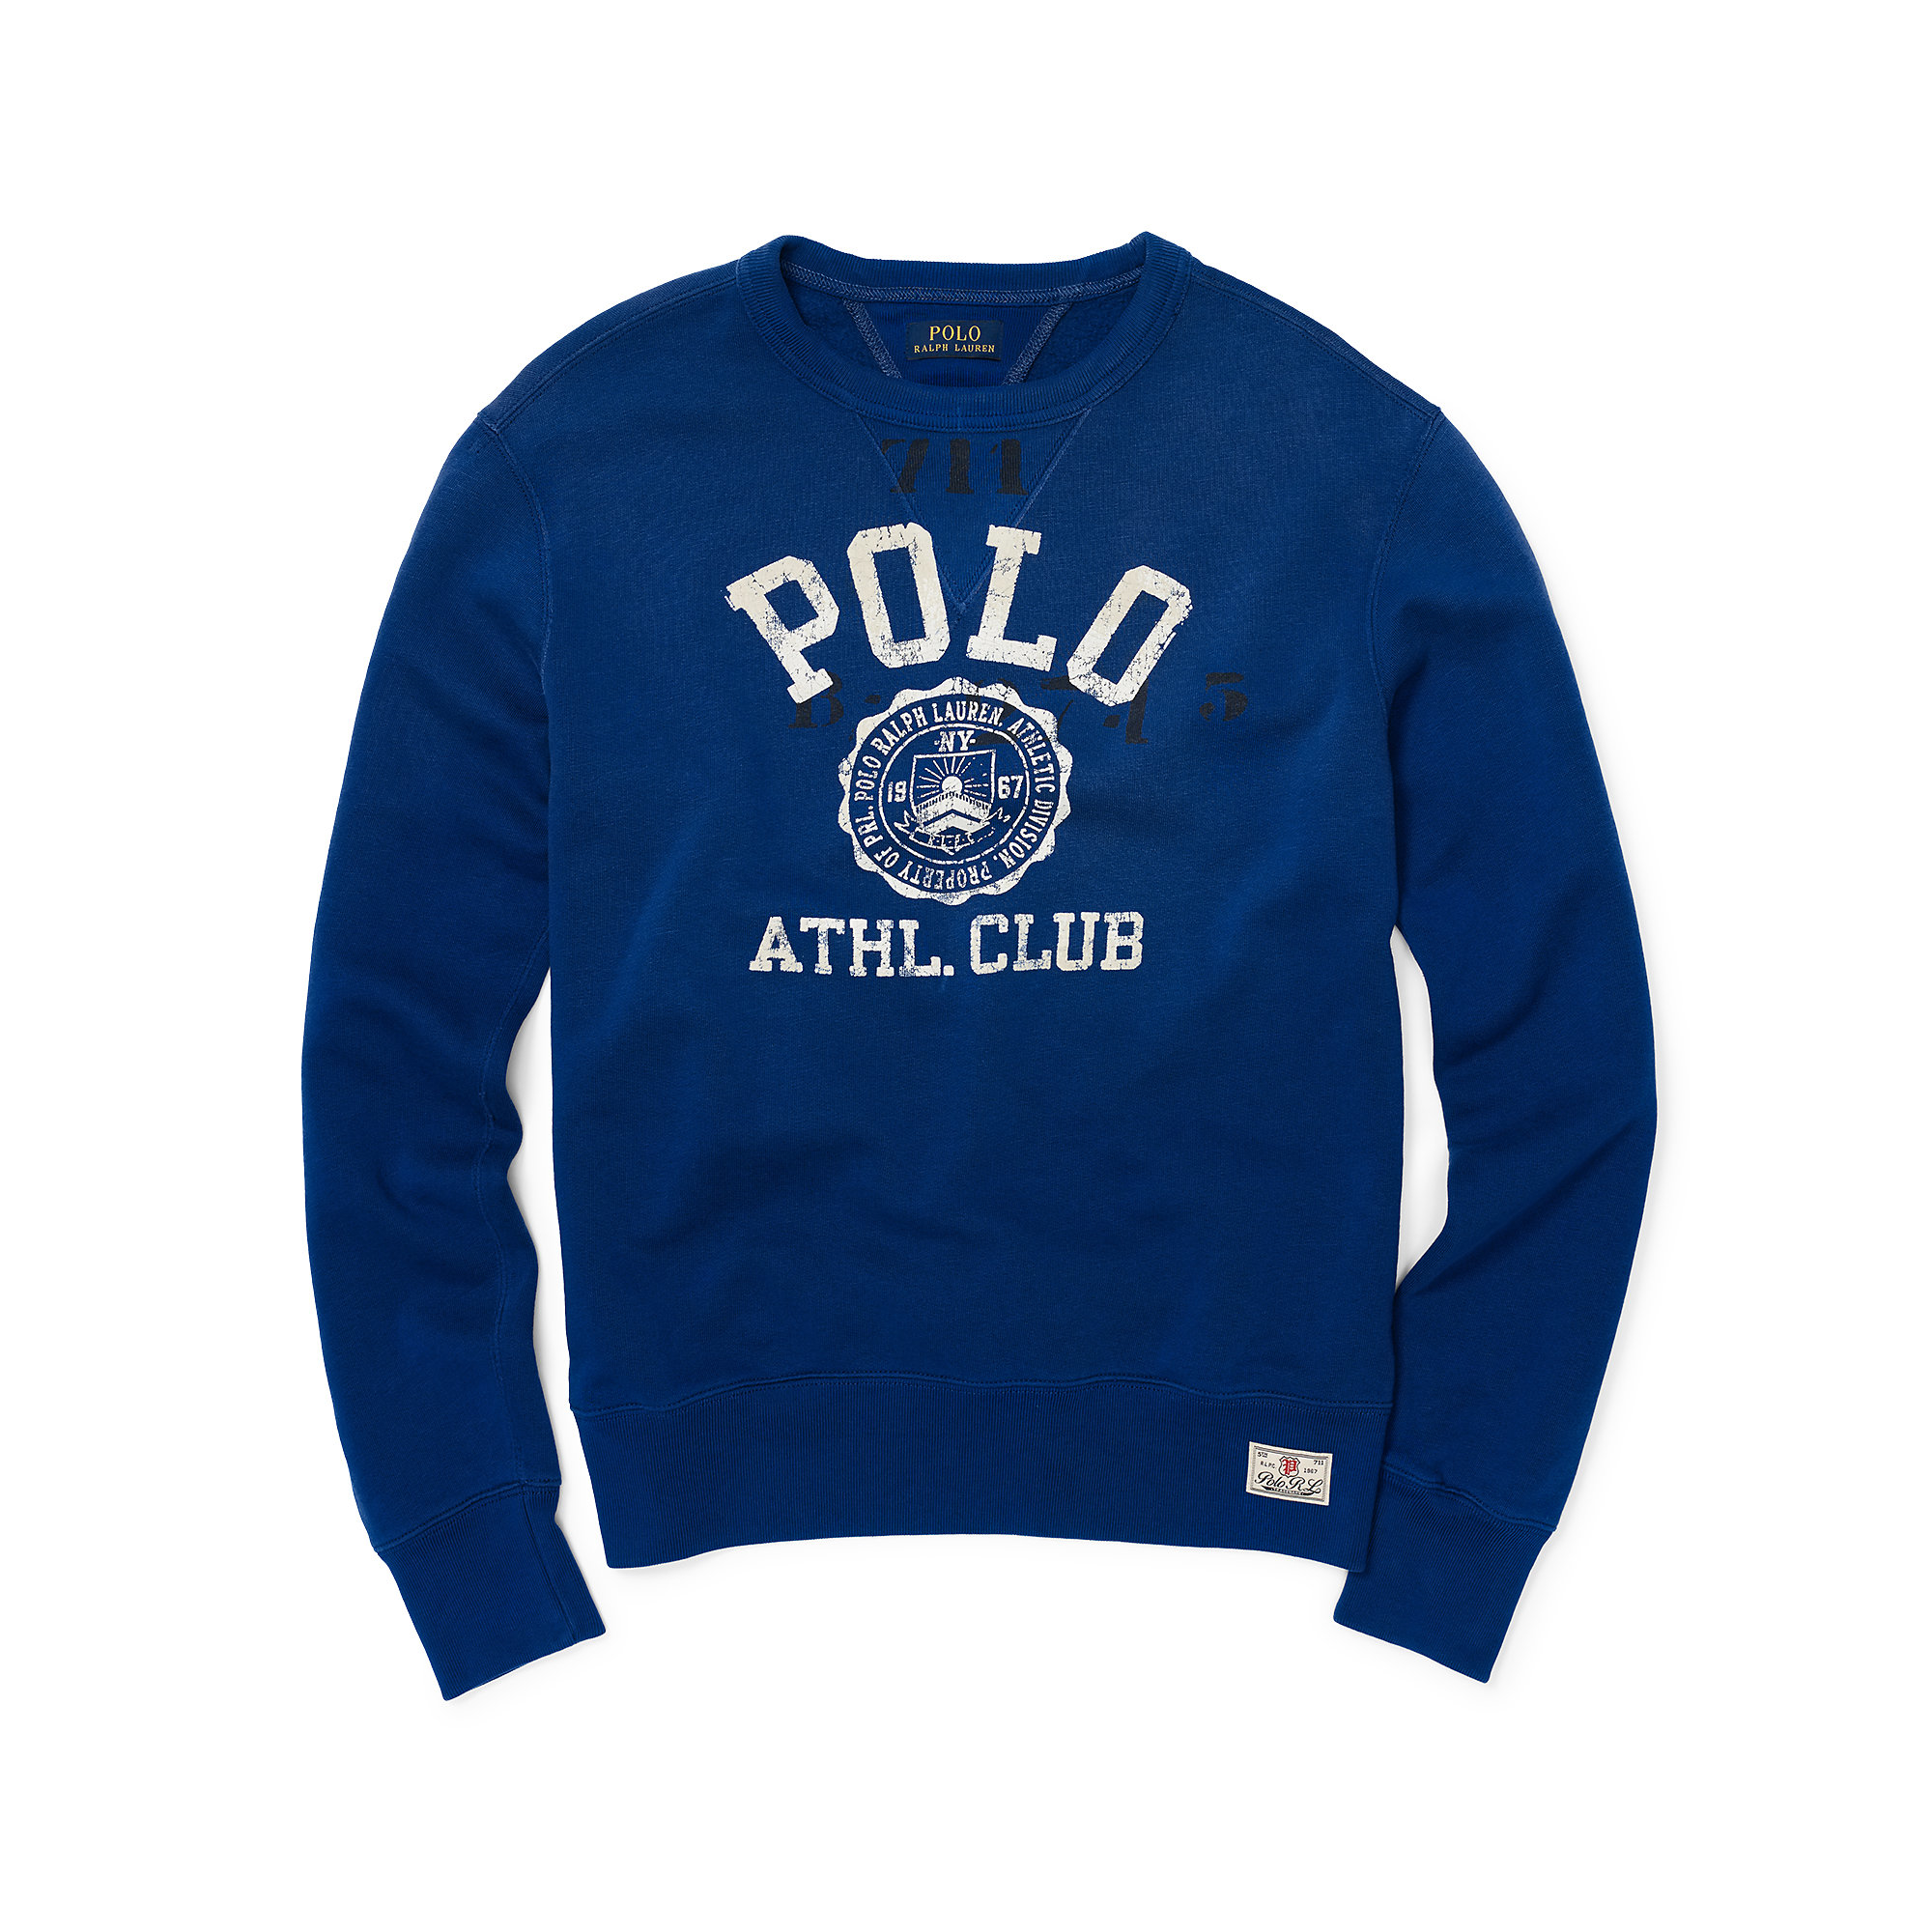 0a3cdb21c reduced polo ralph lauren mercer club winter rugby shirt d910e f3e27  cheap  lyst polo ralph lauren fleece graphic sweatshirt in blue for men 1a99d ac1cb